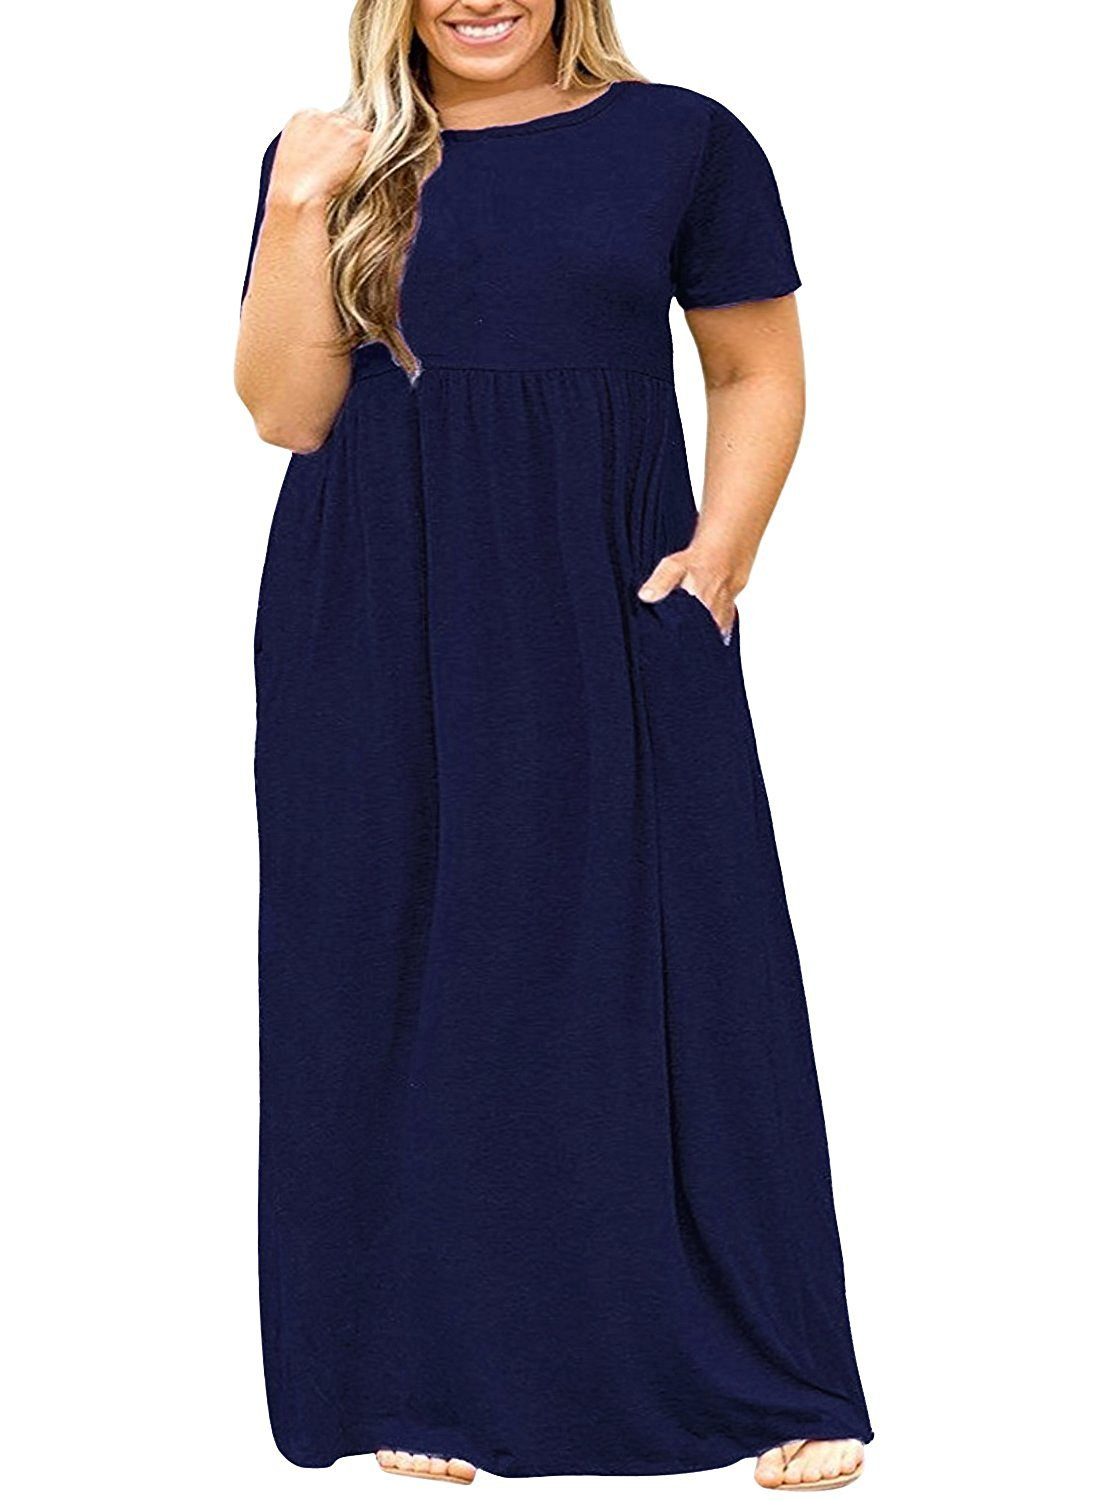 YONYWA Plus Size Womens Dresses Short Sleeve Casual Loose Plain Long Maxi T Shirt Dress with Pockets